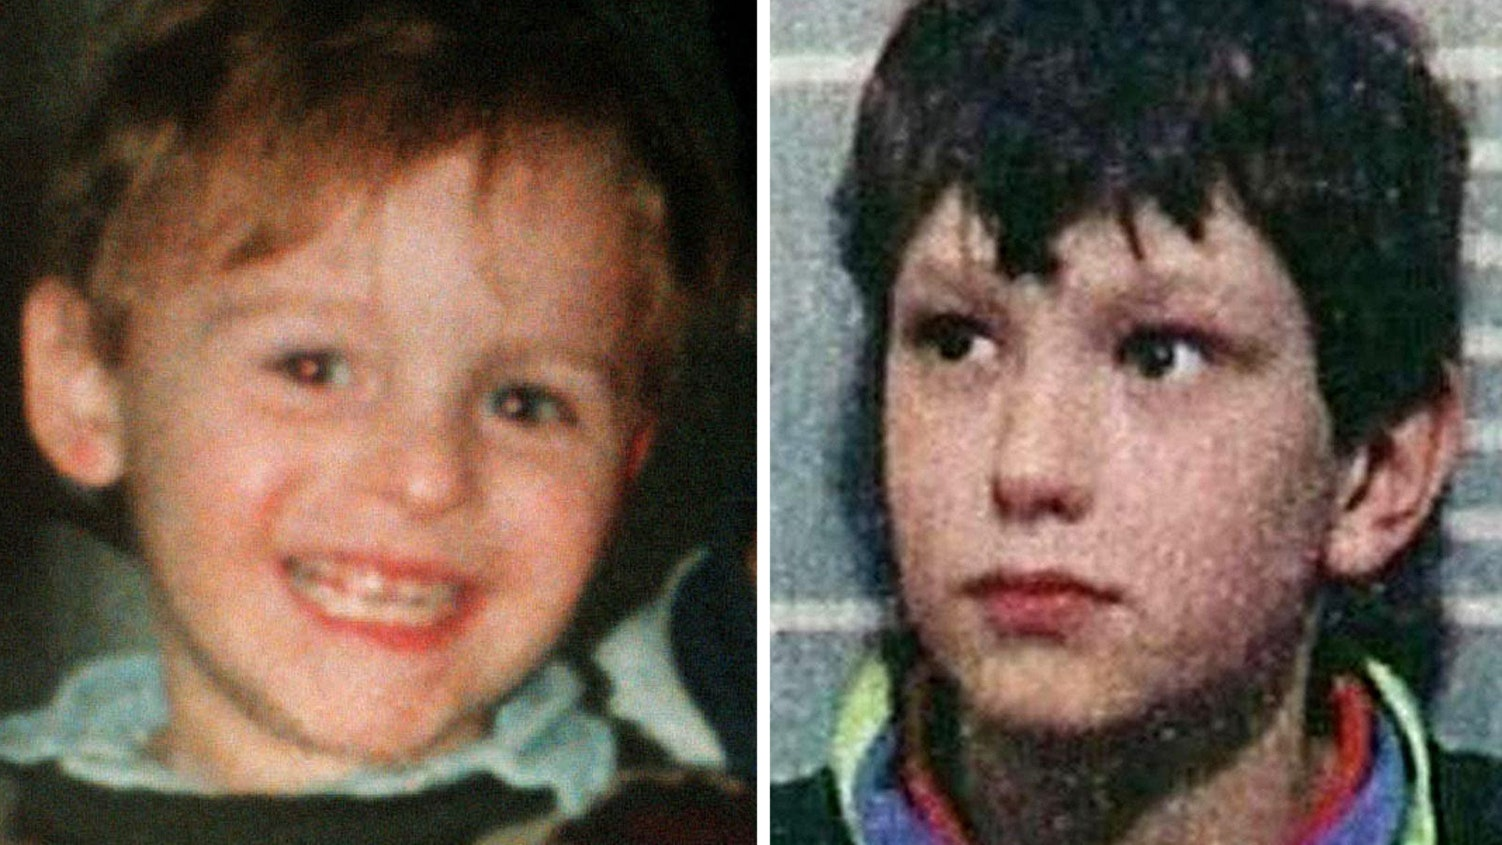 James Bulger's killer Jon Venables admits possessing indecent images of children